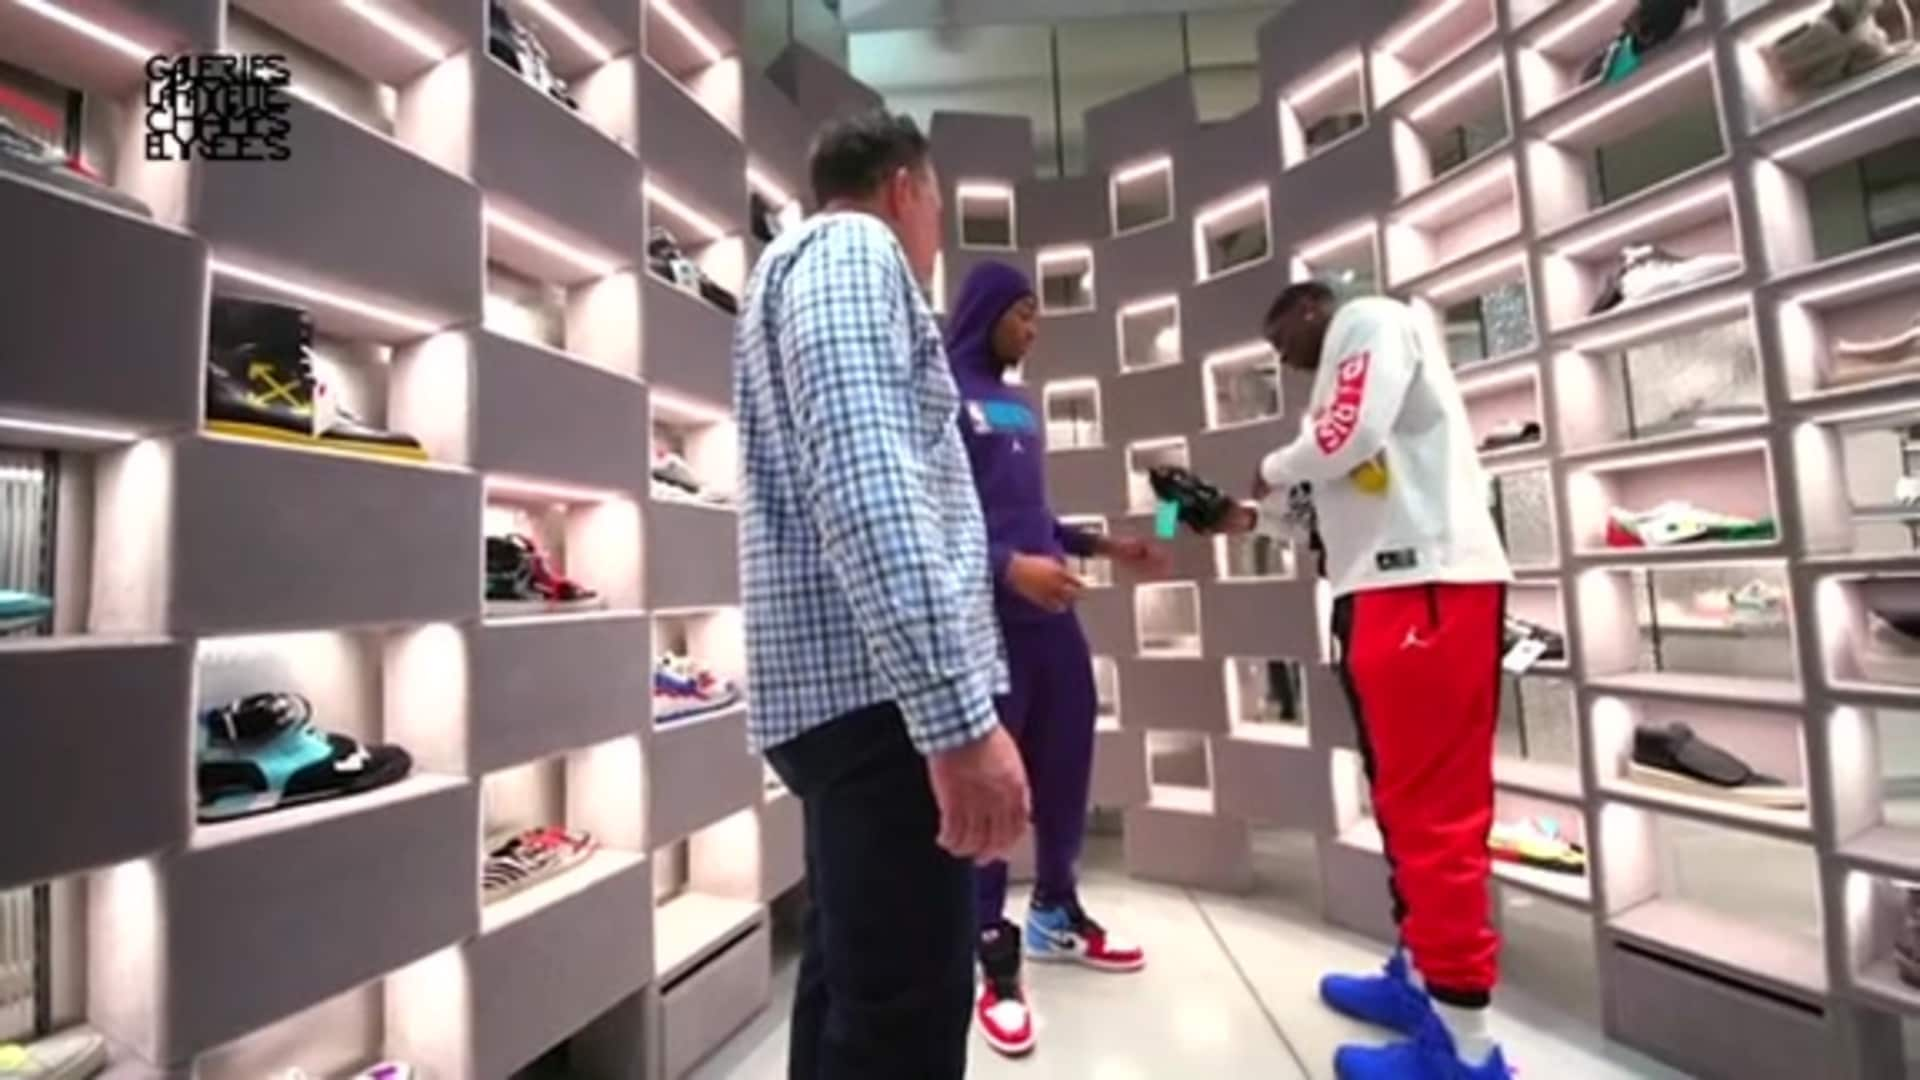 Hornets Paris | Dwayne and P.J. take Eric Collins Shopping - 1/24/20